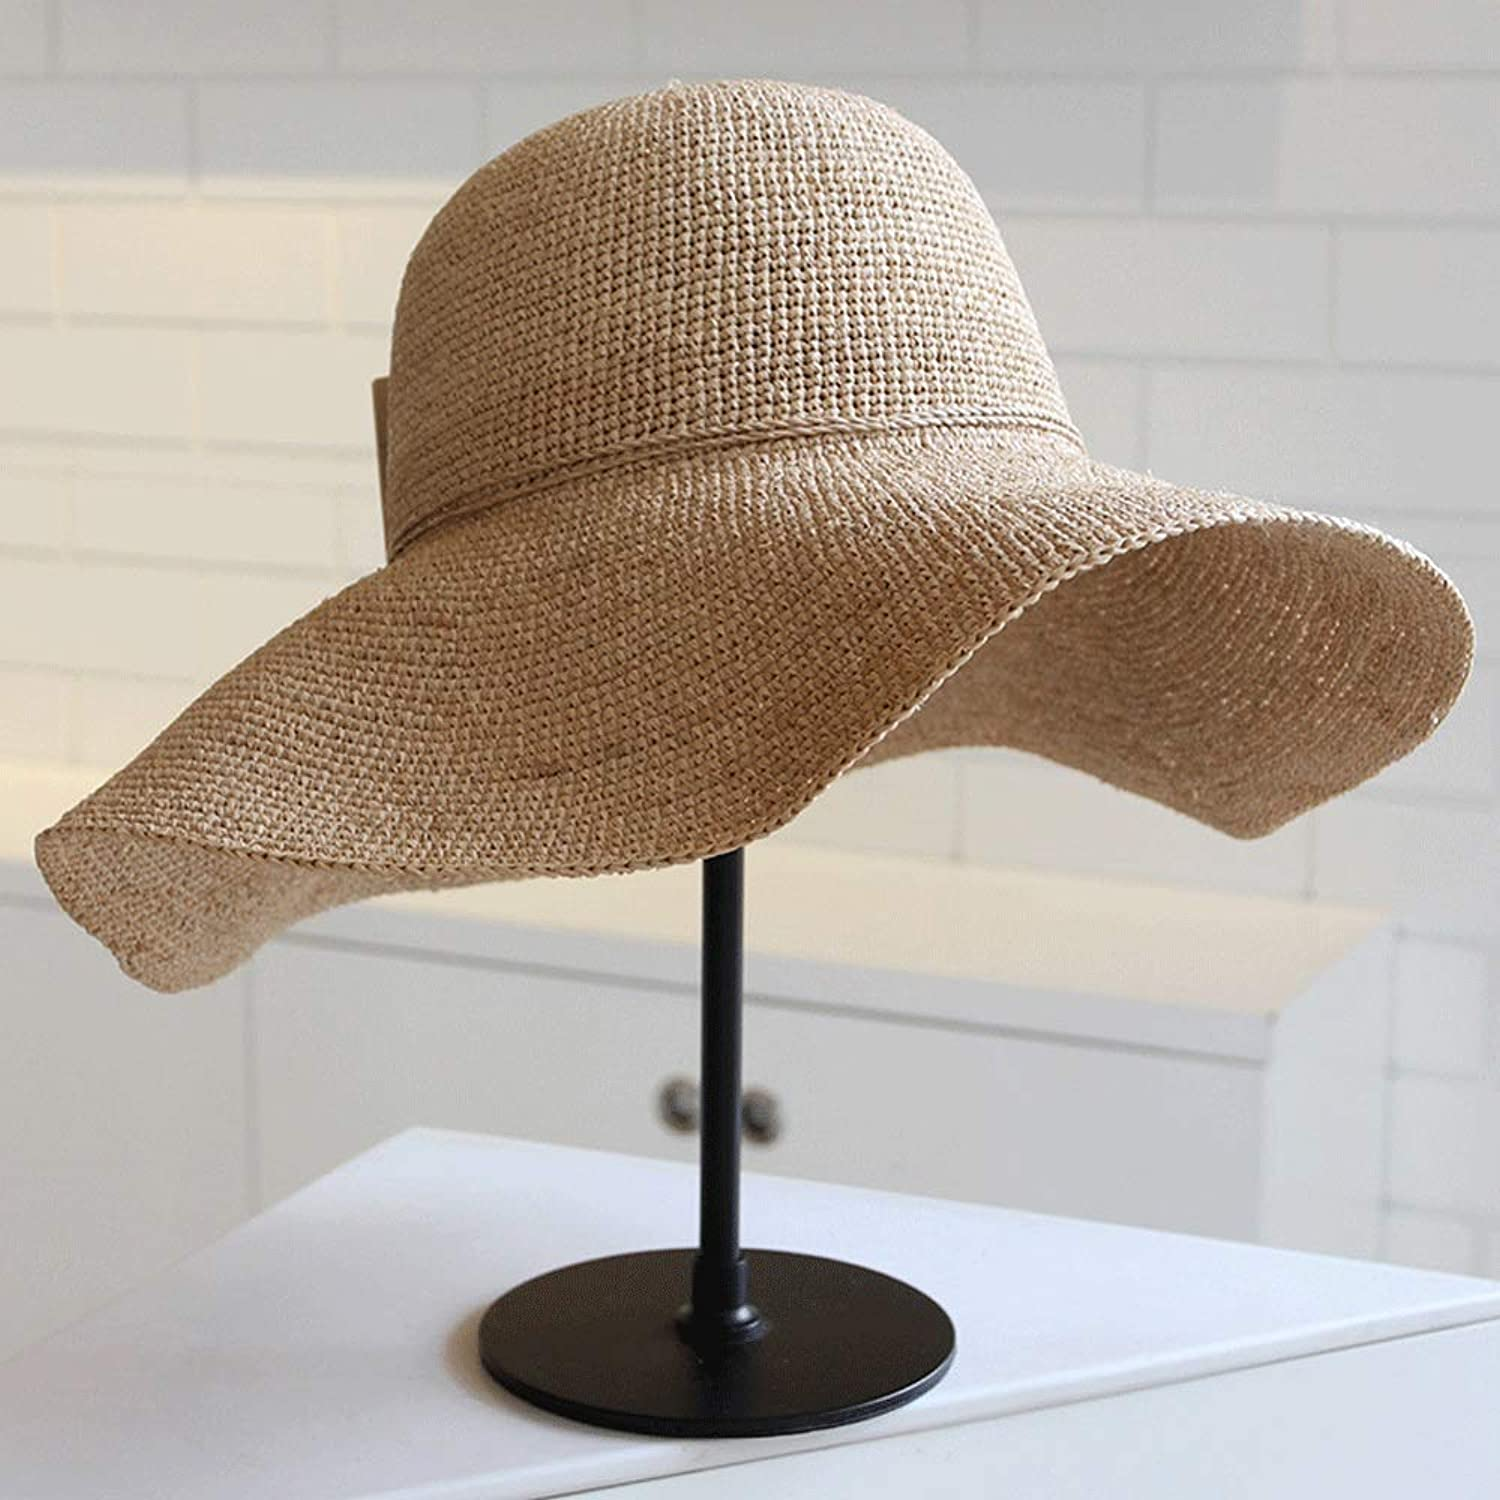 YD Hat - Women's Summer Sunshade Beach Hat Fashion Simple Straw Hat UV Predection Comfortable Breathable Folding Easy to Carry (Beige)    (Size   Hat Side  12 cm)